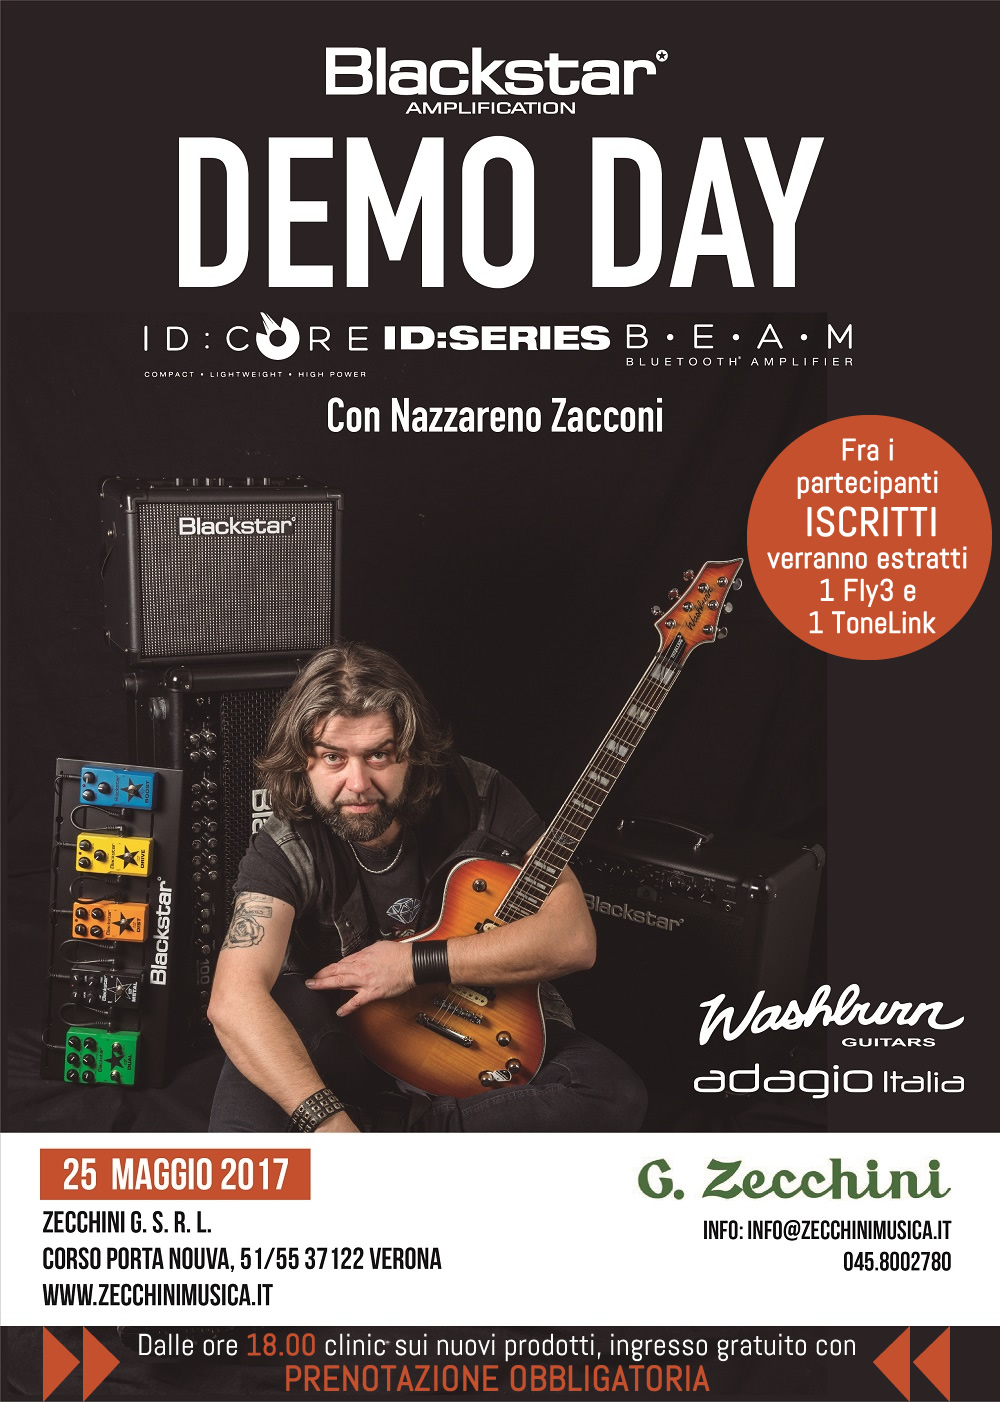 DEMO DAY BLACKSTAR - ZACCONI